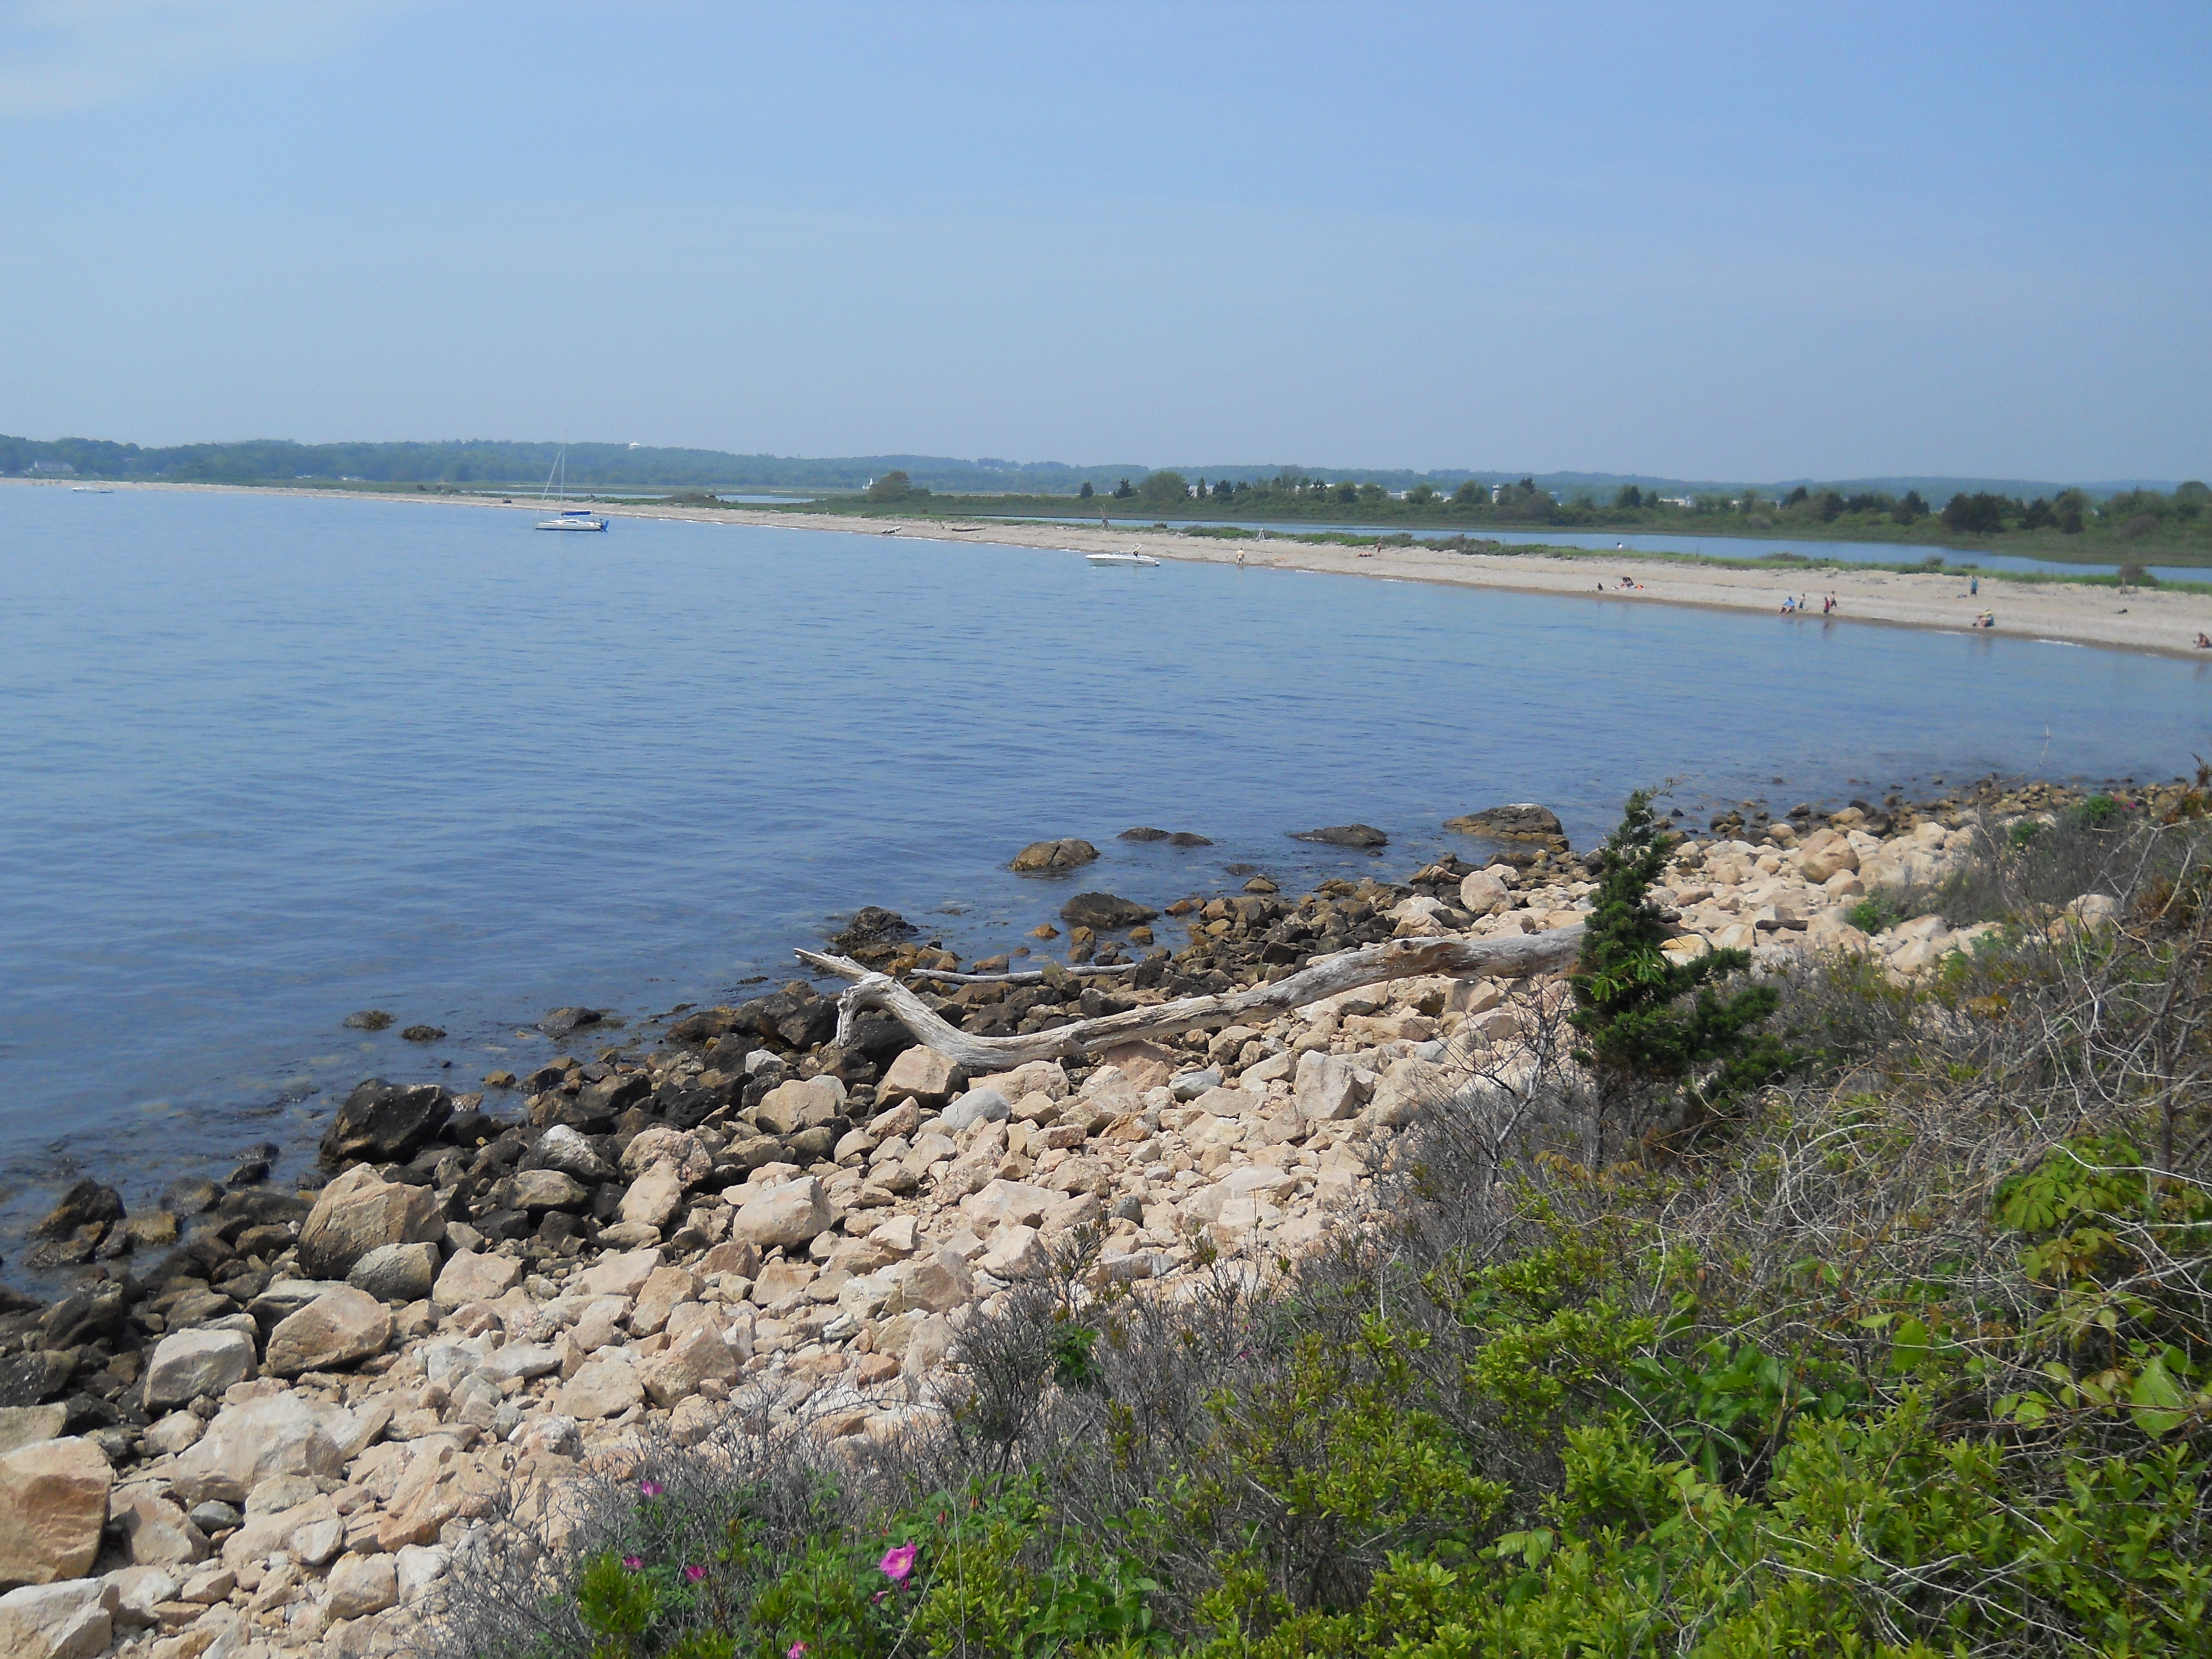 Looking back towards the beach area at Bluff Point State Park